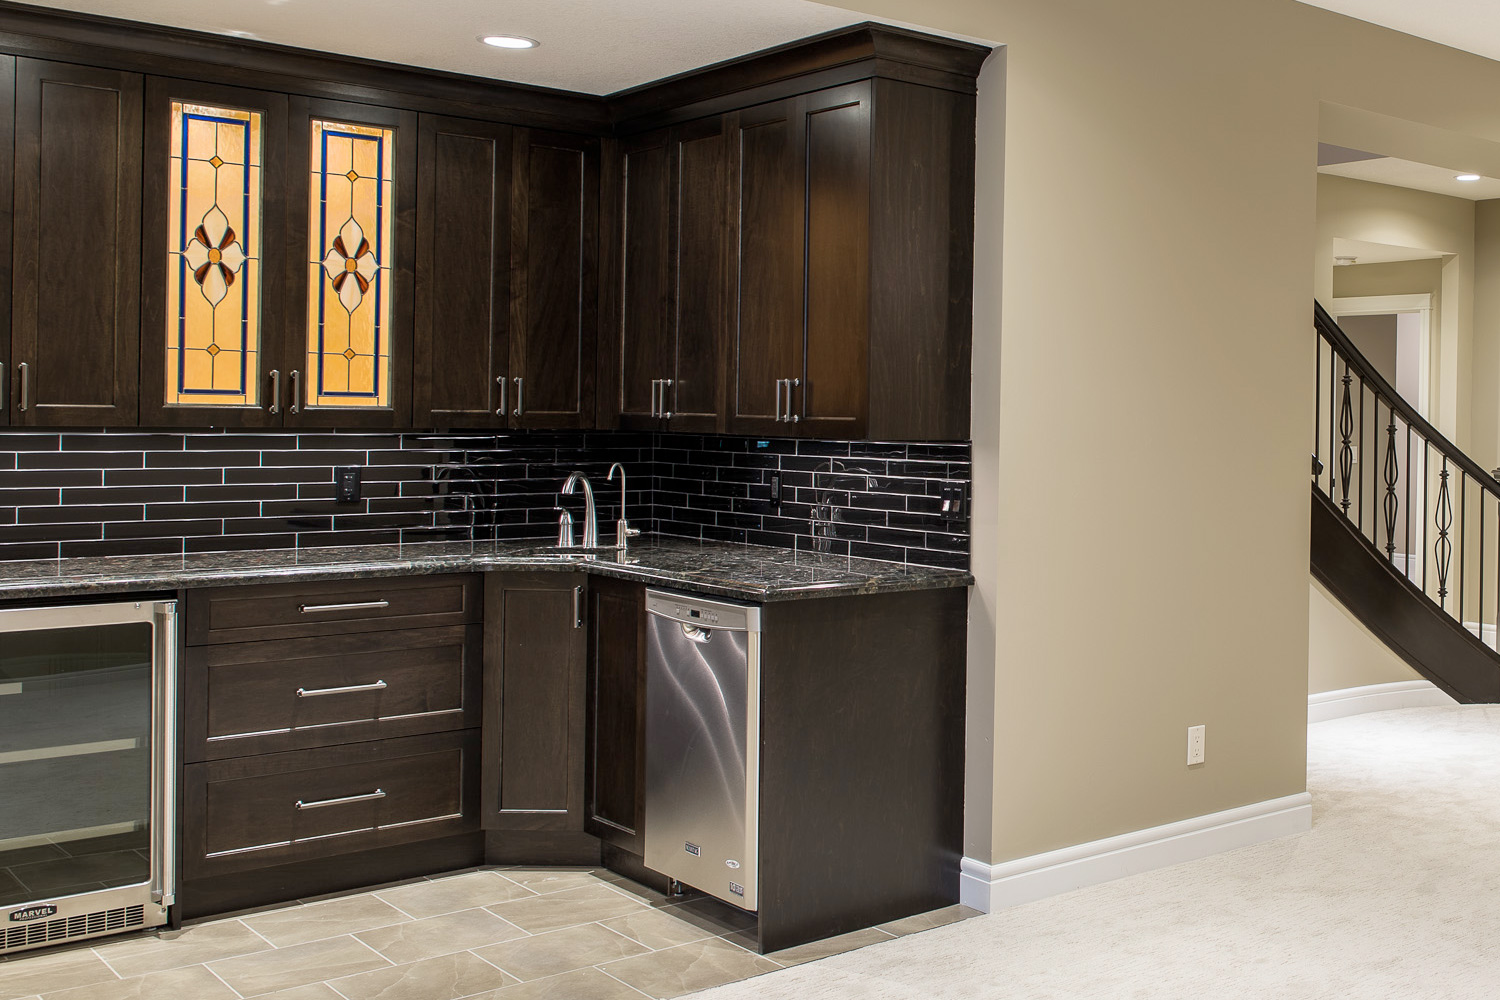 Basement1 archives pinnacle custom cabinets for A 1 custom cabinets